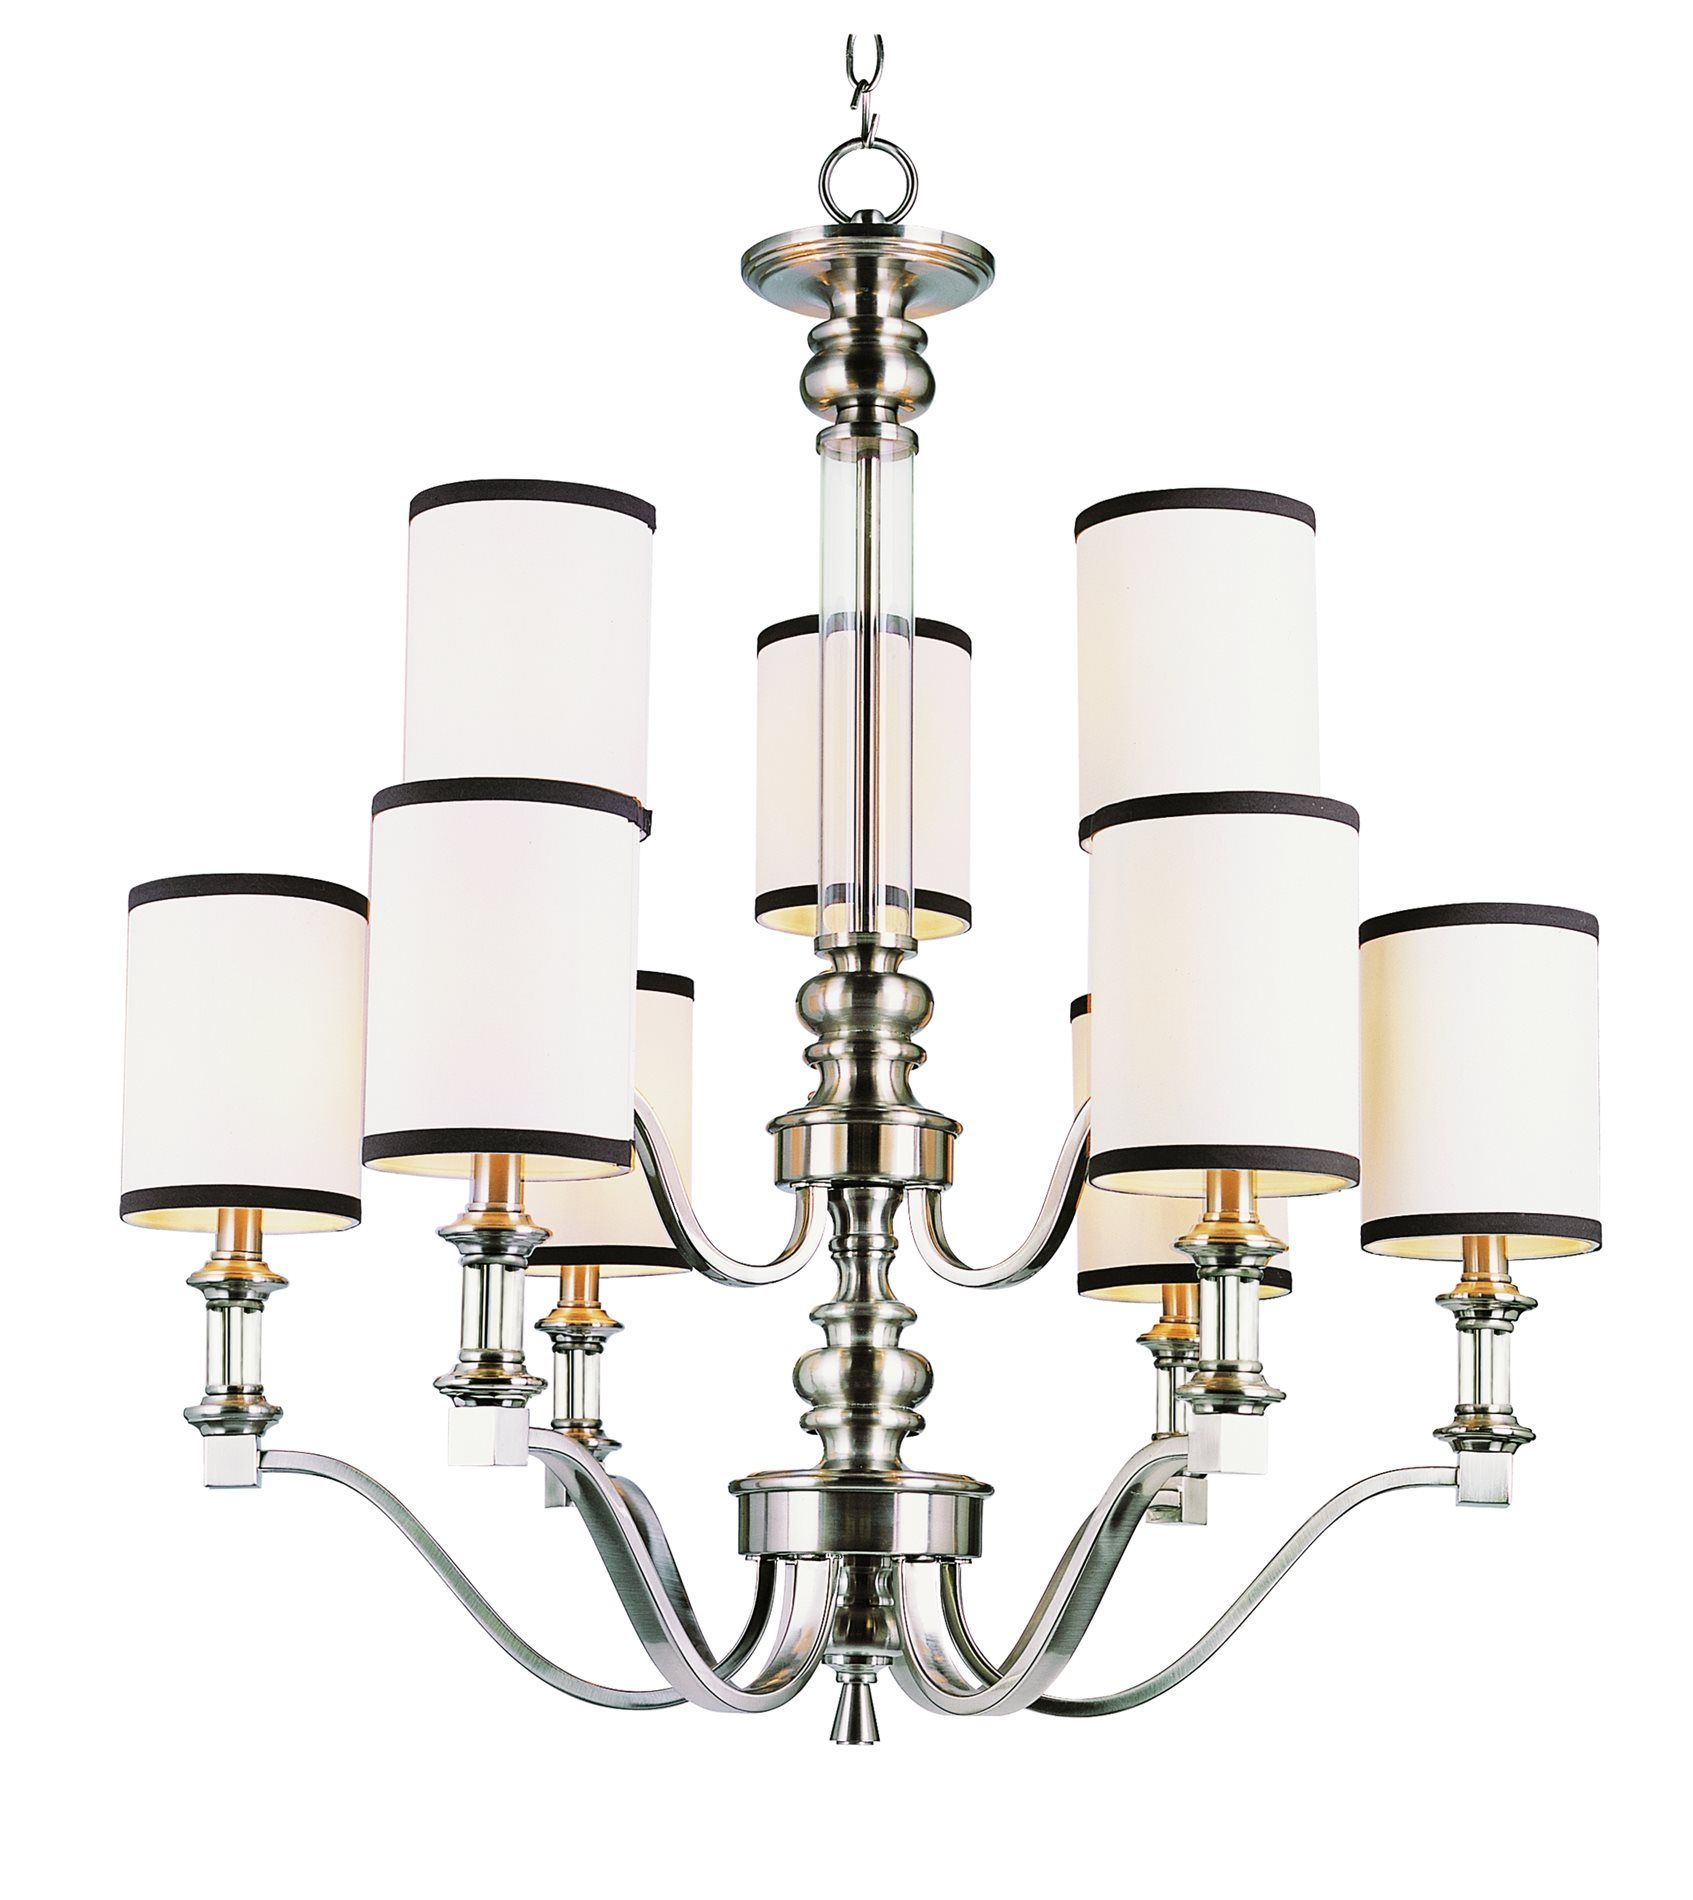 South shore decorating trans globe lighting 7979 bn modern meets traditional chandelier tg 7979